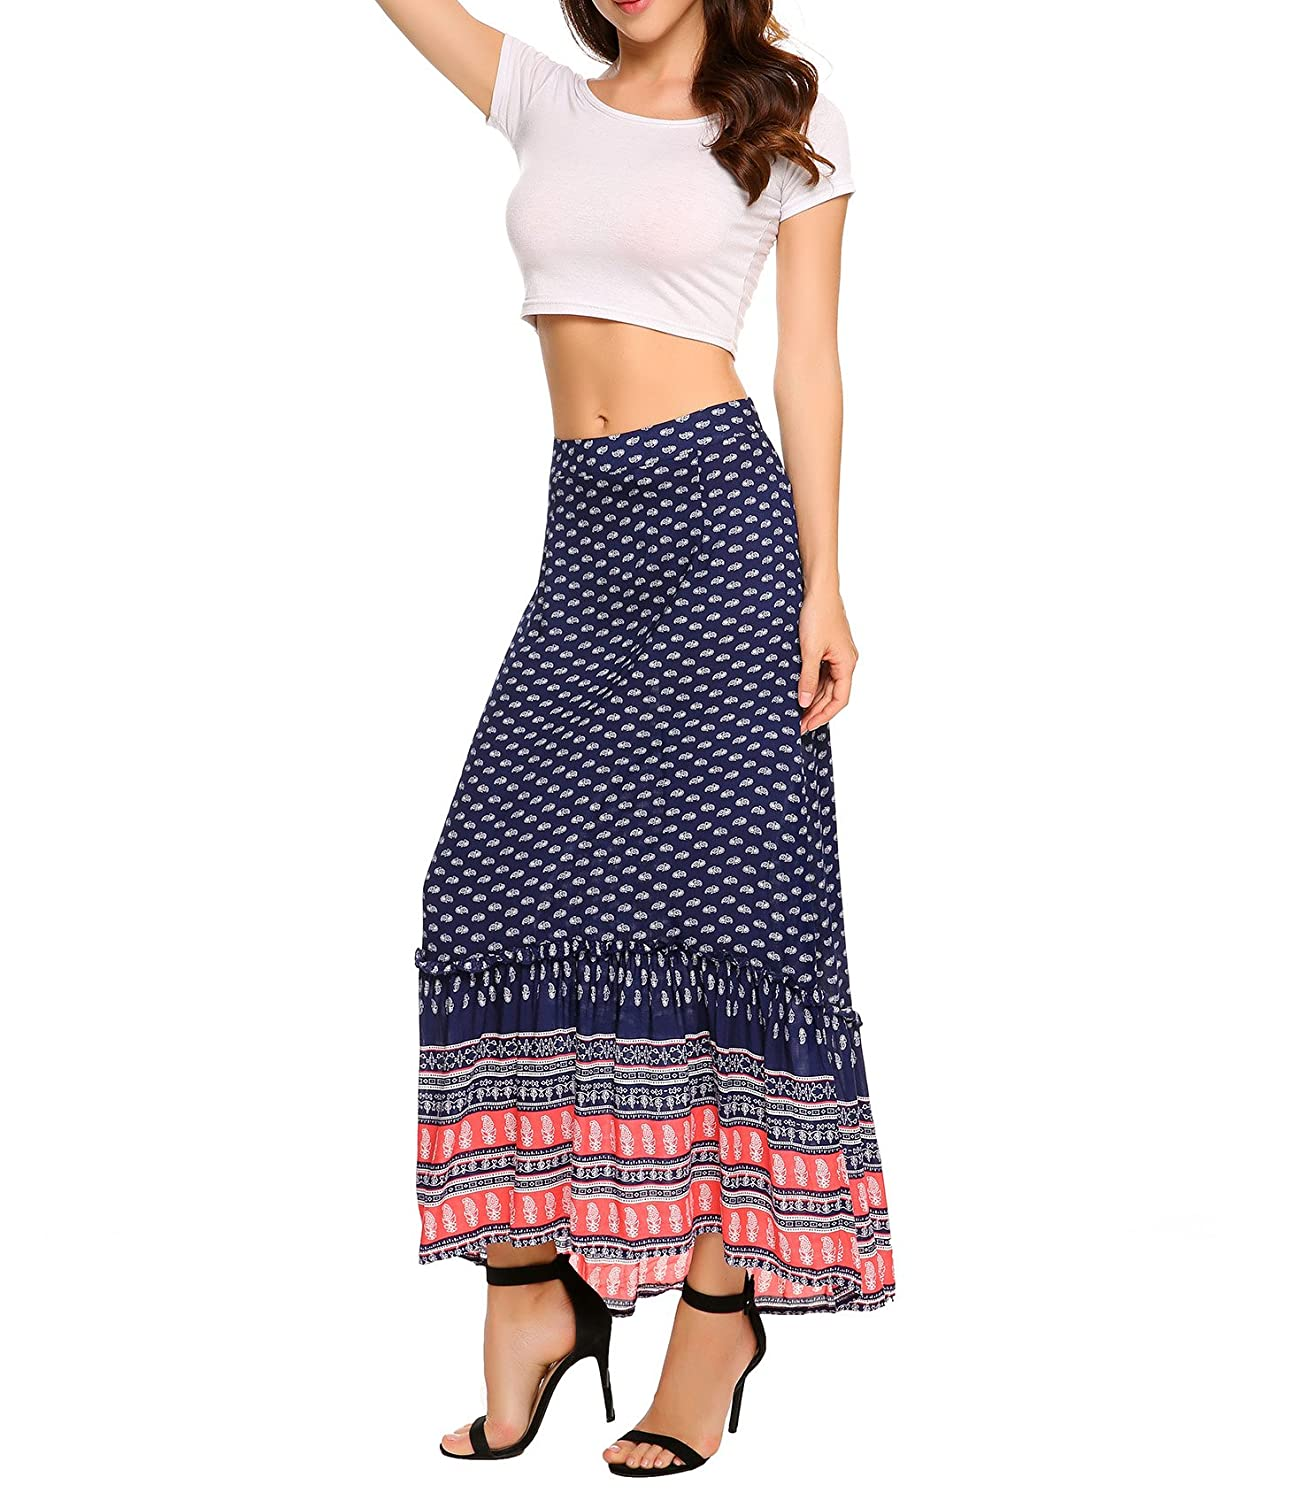 44f5b8119 Chigant High Waist Floral Printed Pleated Skirt Boho Chiffon Midi Skirts  for Women at Amazon Women's Clothing store: